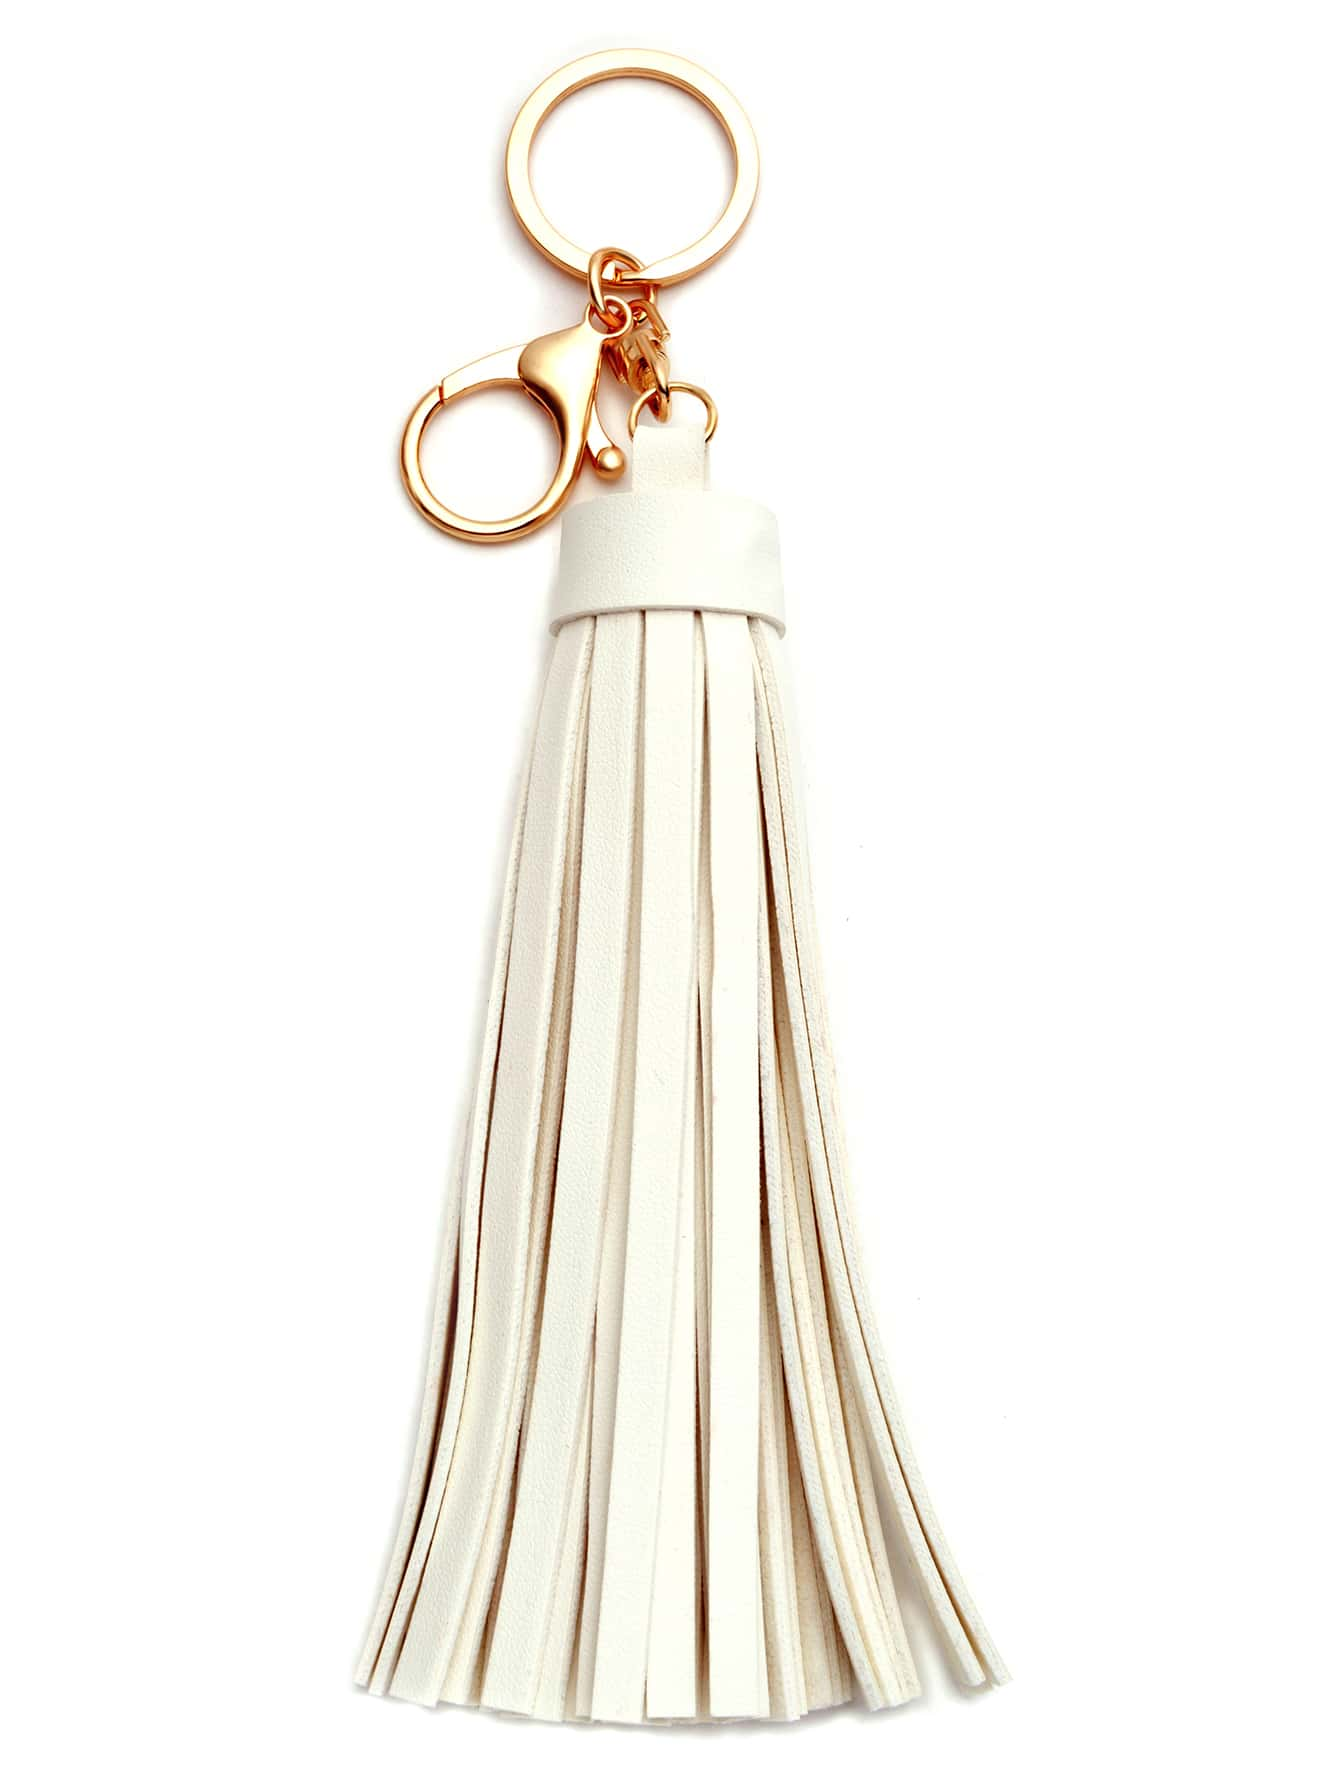 Buy White Faux Leather Tassel Keychain